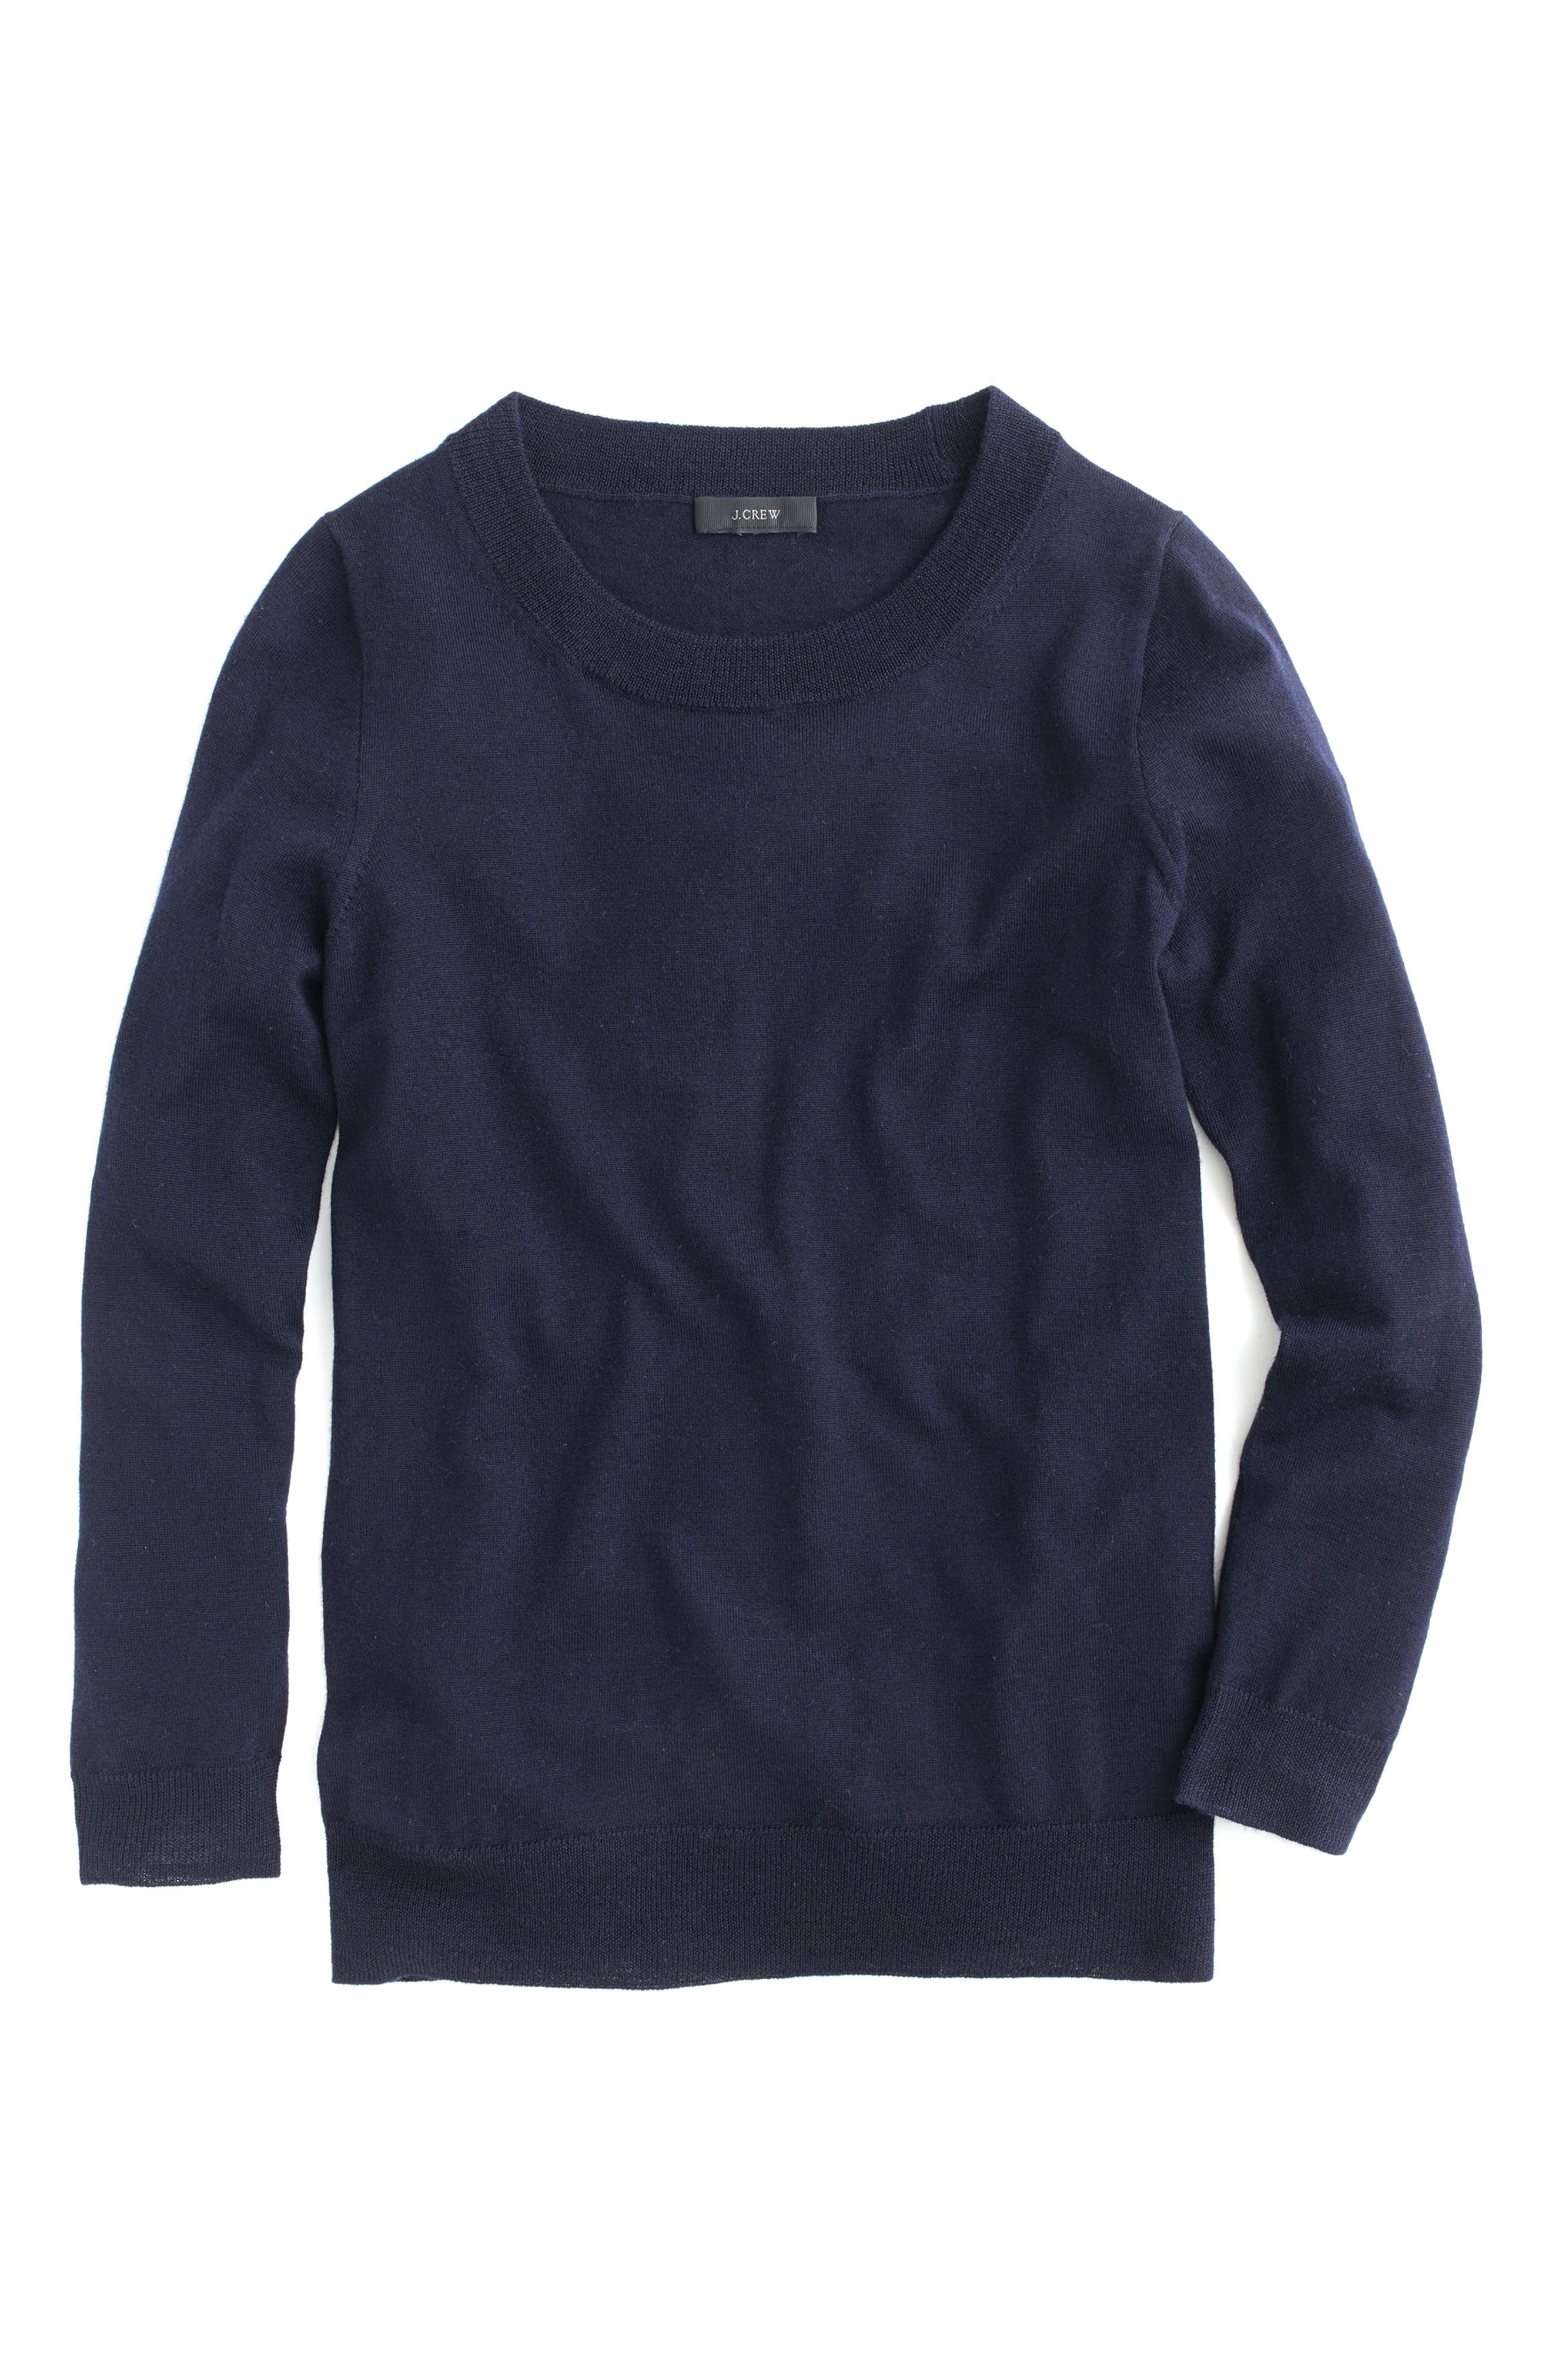 Tippi Merino Wool Sweater, Main, color, NAVY